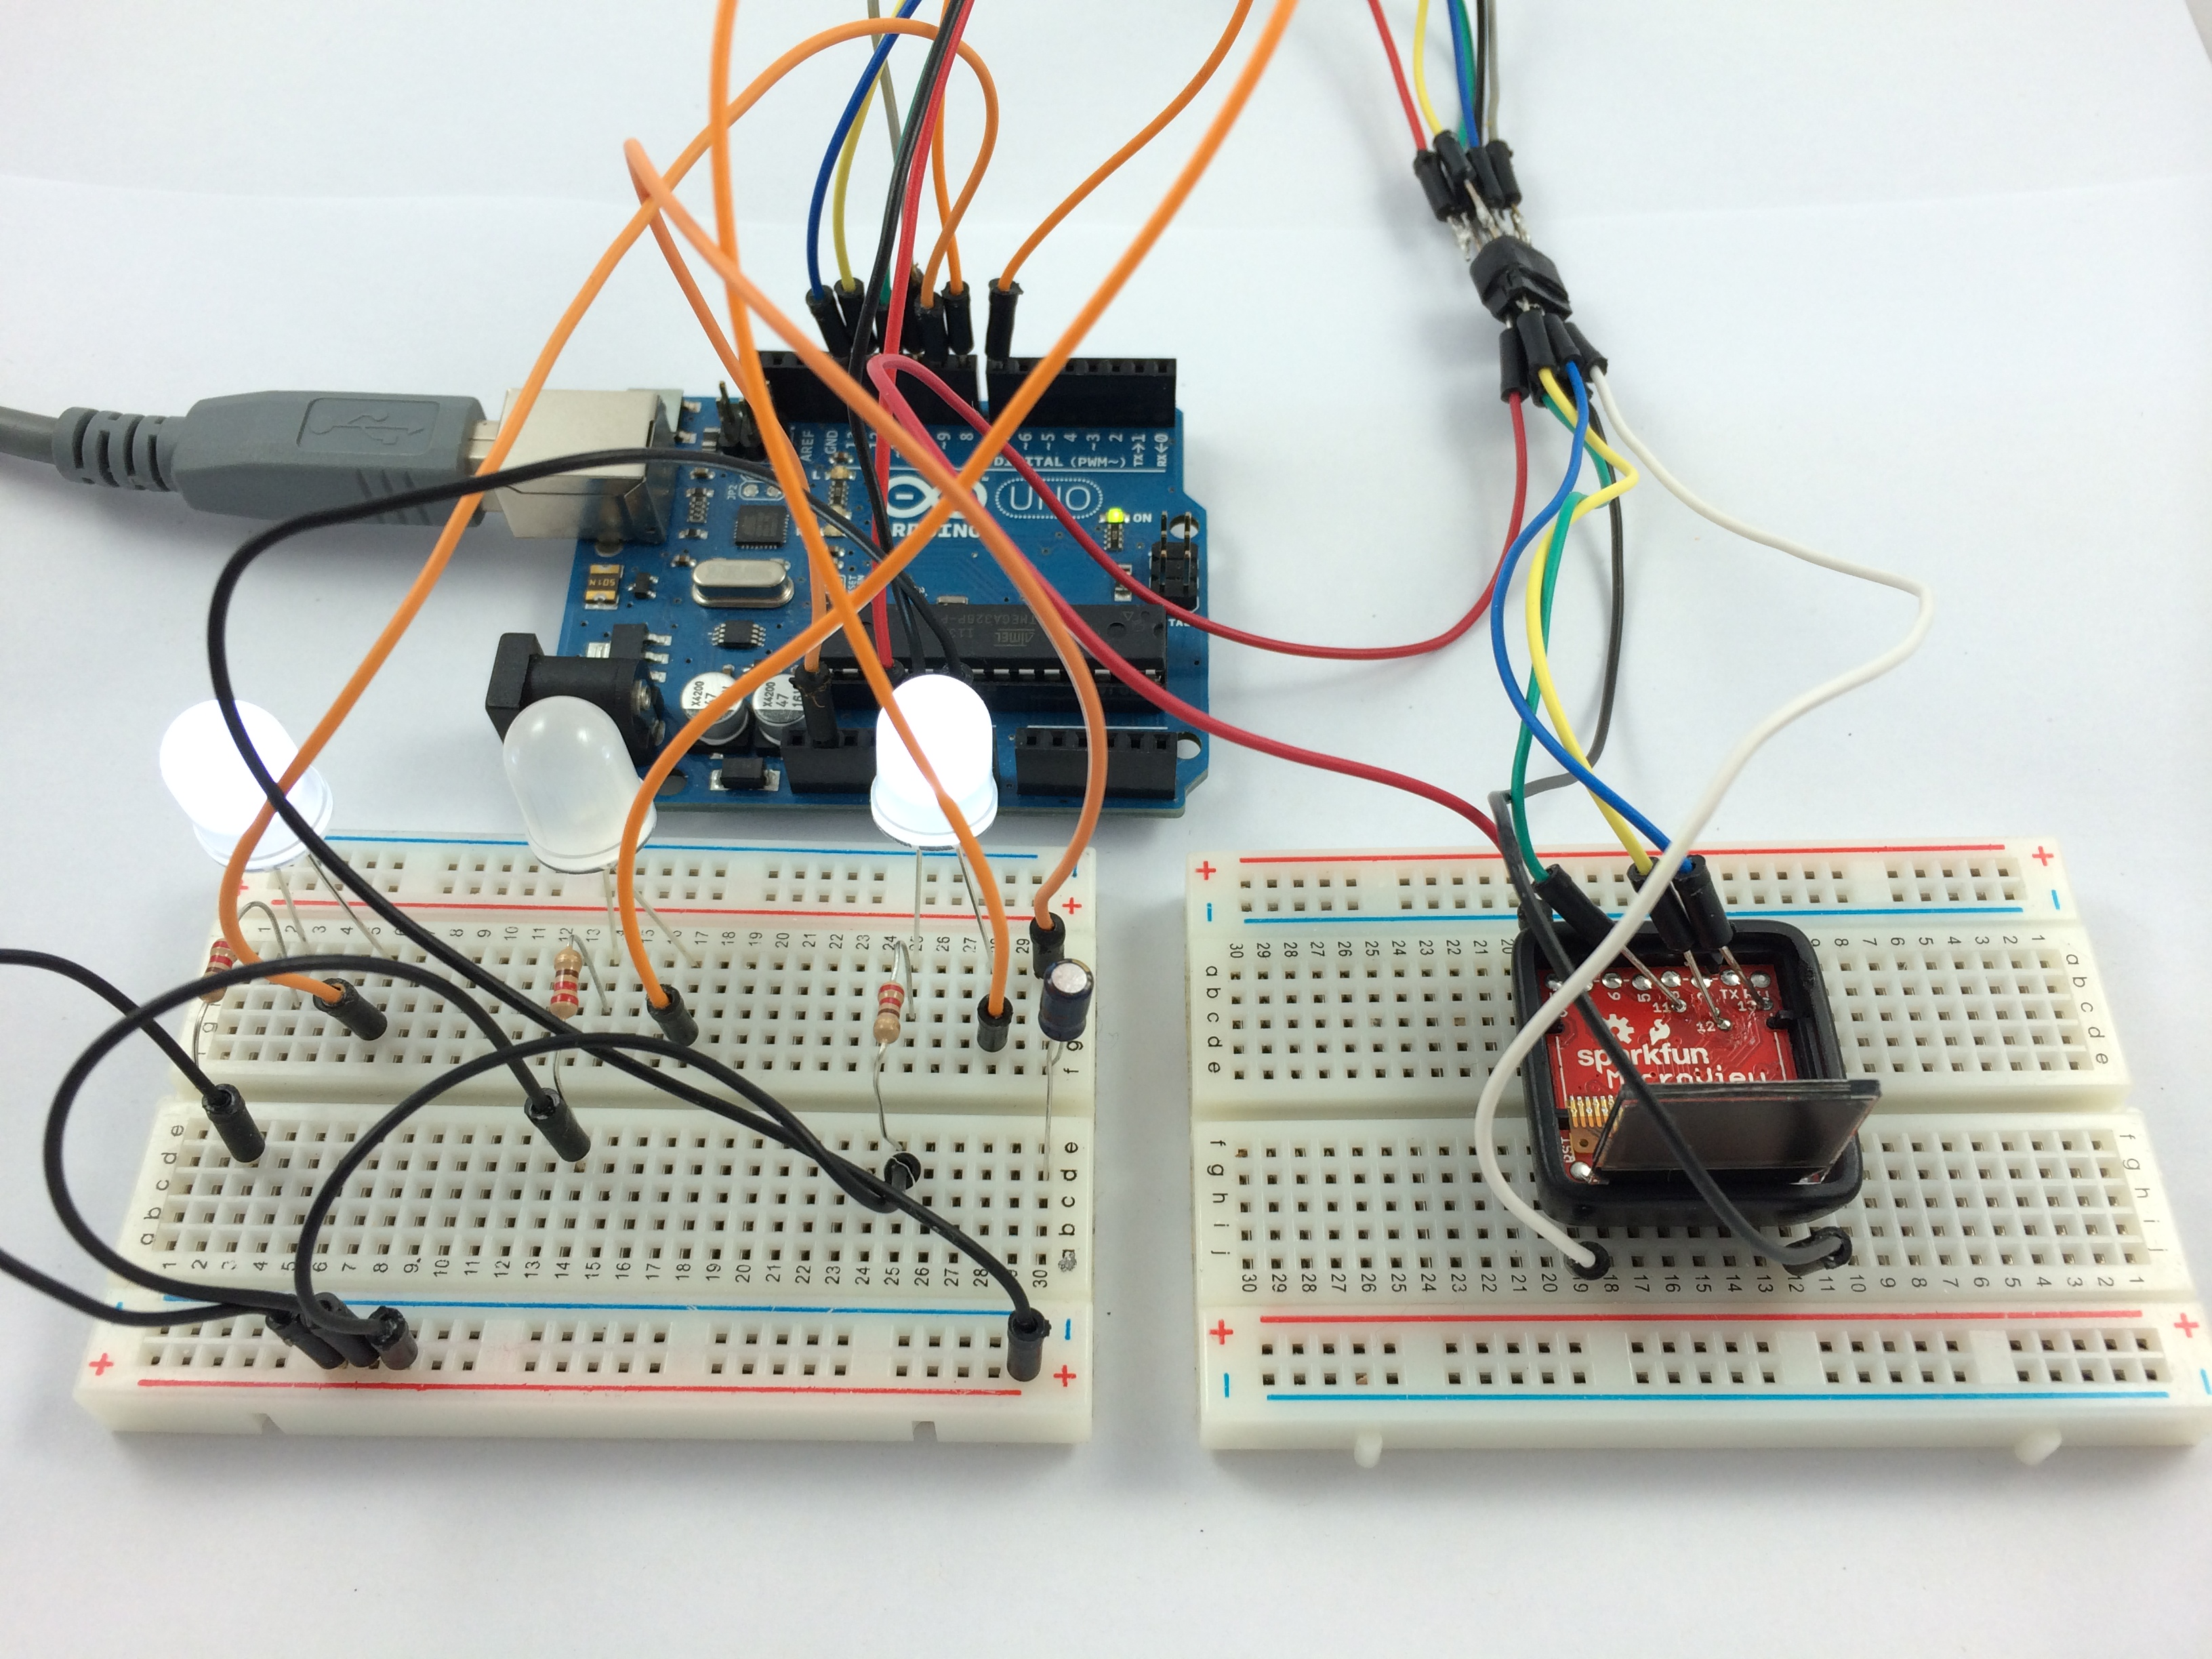 Uploading the bootloader to the MicroView